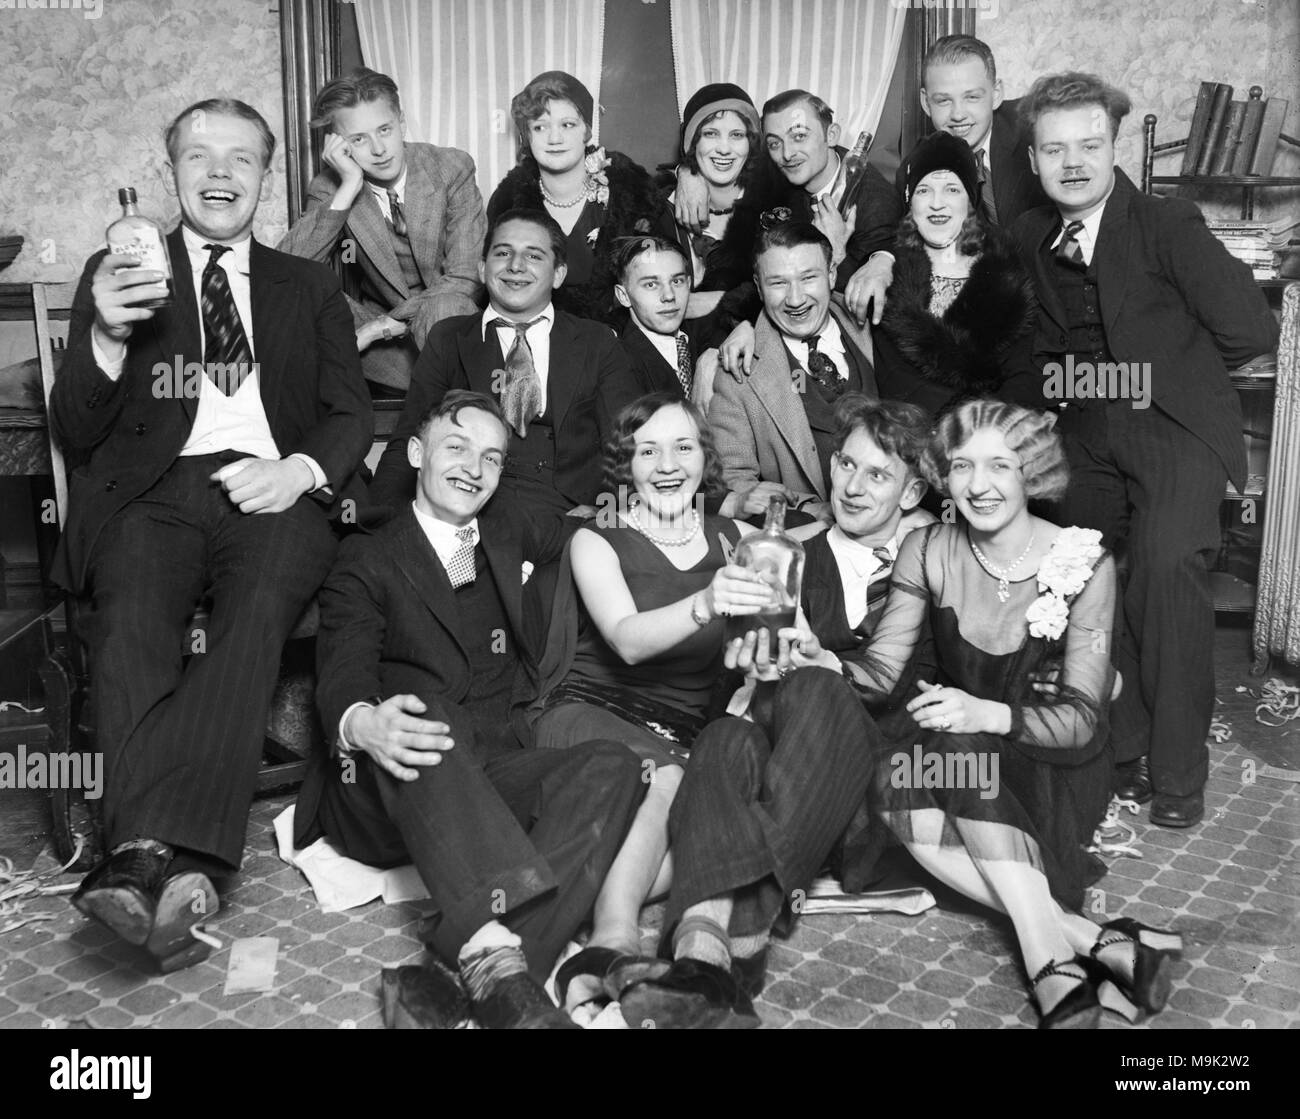 """Young people drink bootleg whiskey labled """"Old Log Cabin"""" during Prohibition in Chicago in 1927.  """"Old Log Cabin"""" was Canadian Club Whiskey imported by gangster Al Capone and Bugs Moran then rebottled and distributed in the Chicago area. - Stock Image"""